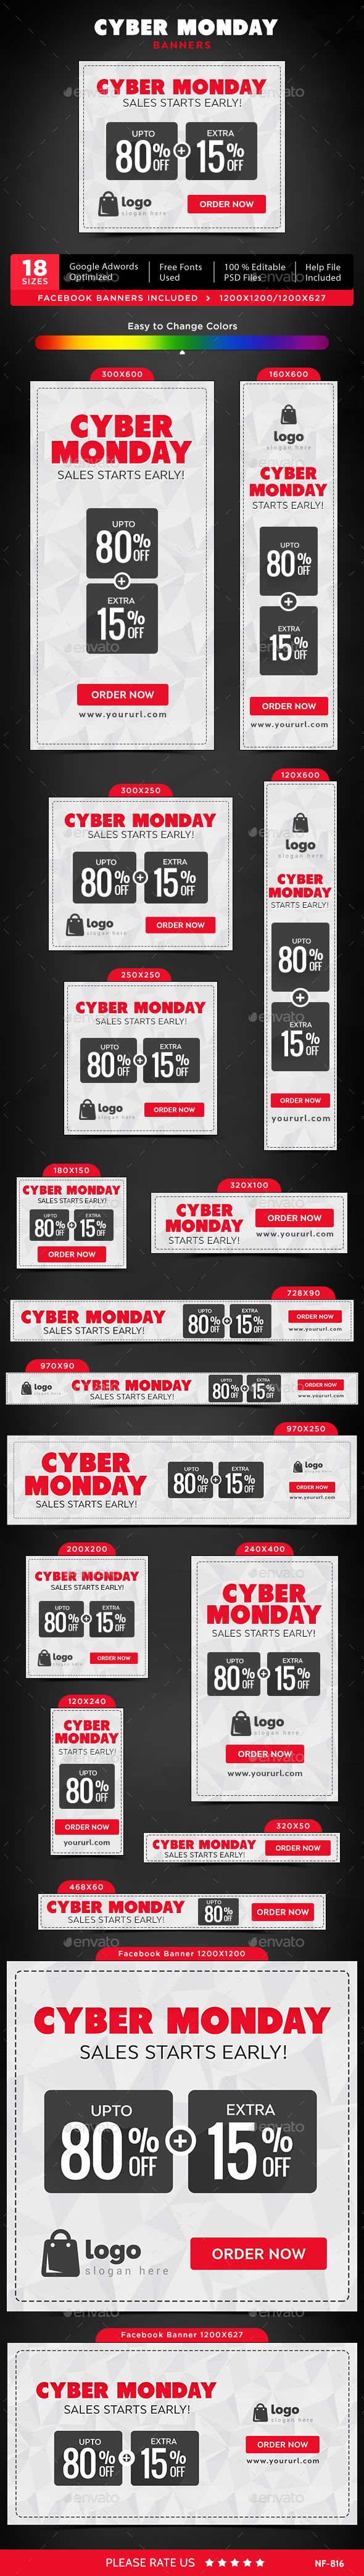 Cyber Monday Web Banners Template PSD #design #ads Download: http://graphicriver.net/item/cyber-monday-banners/13736907?ref=ksioks